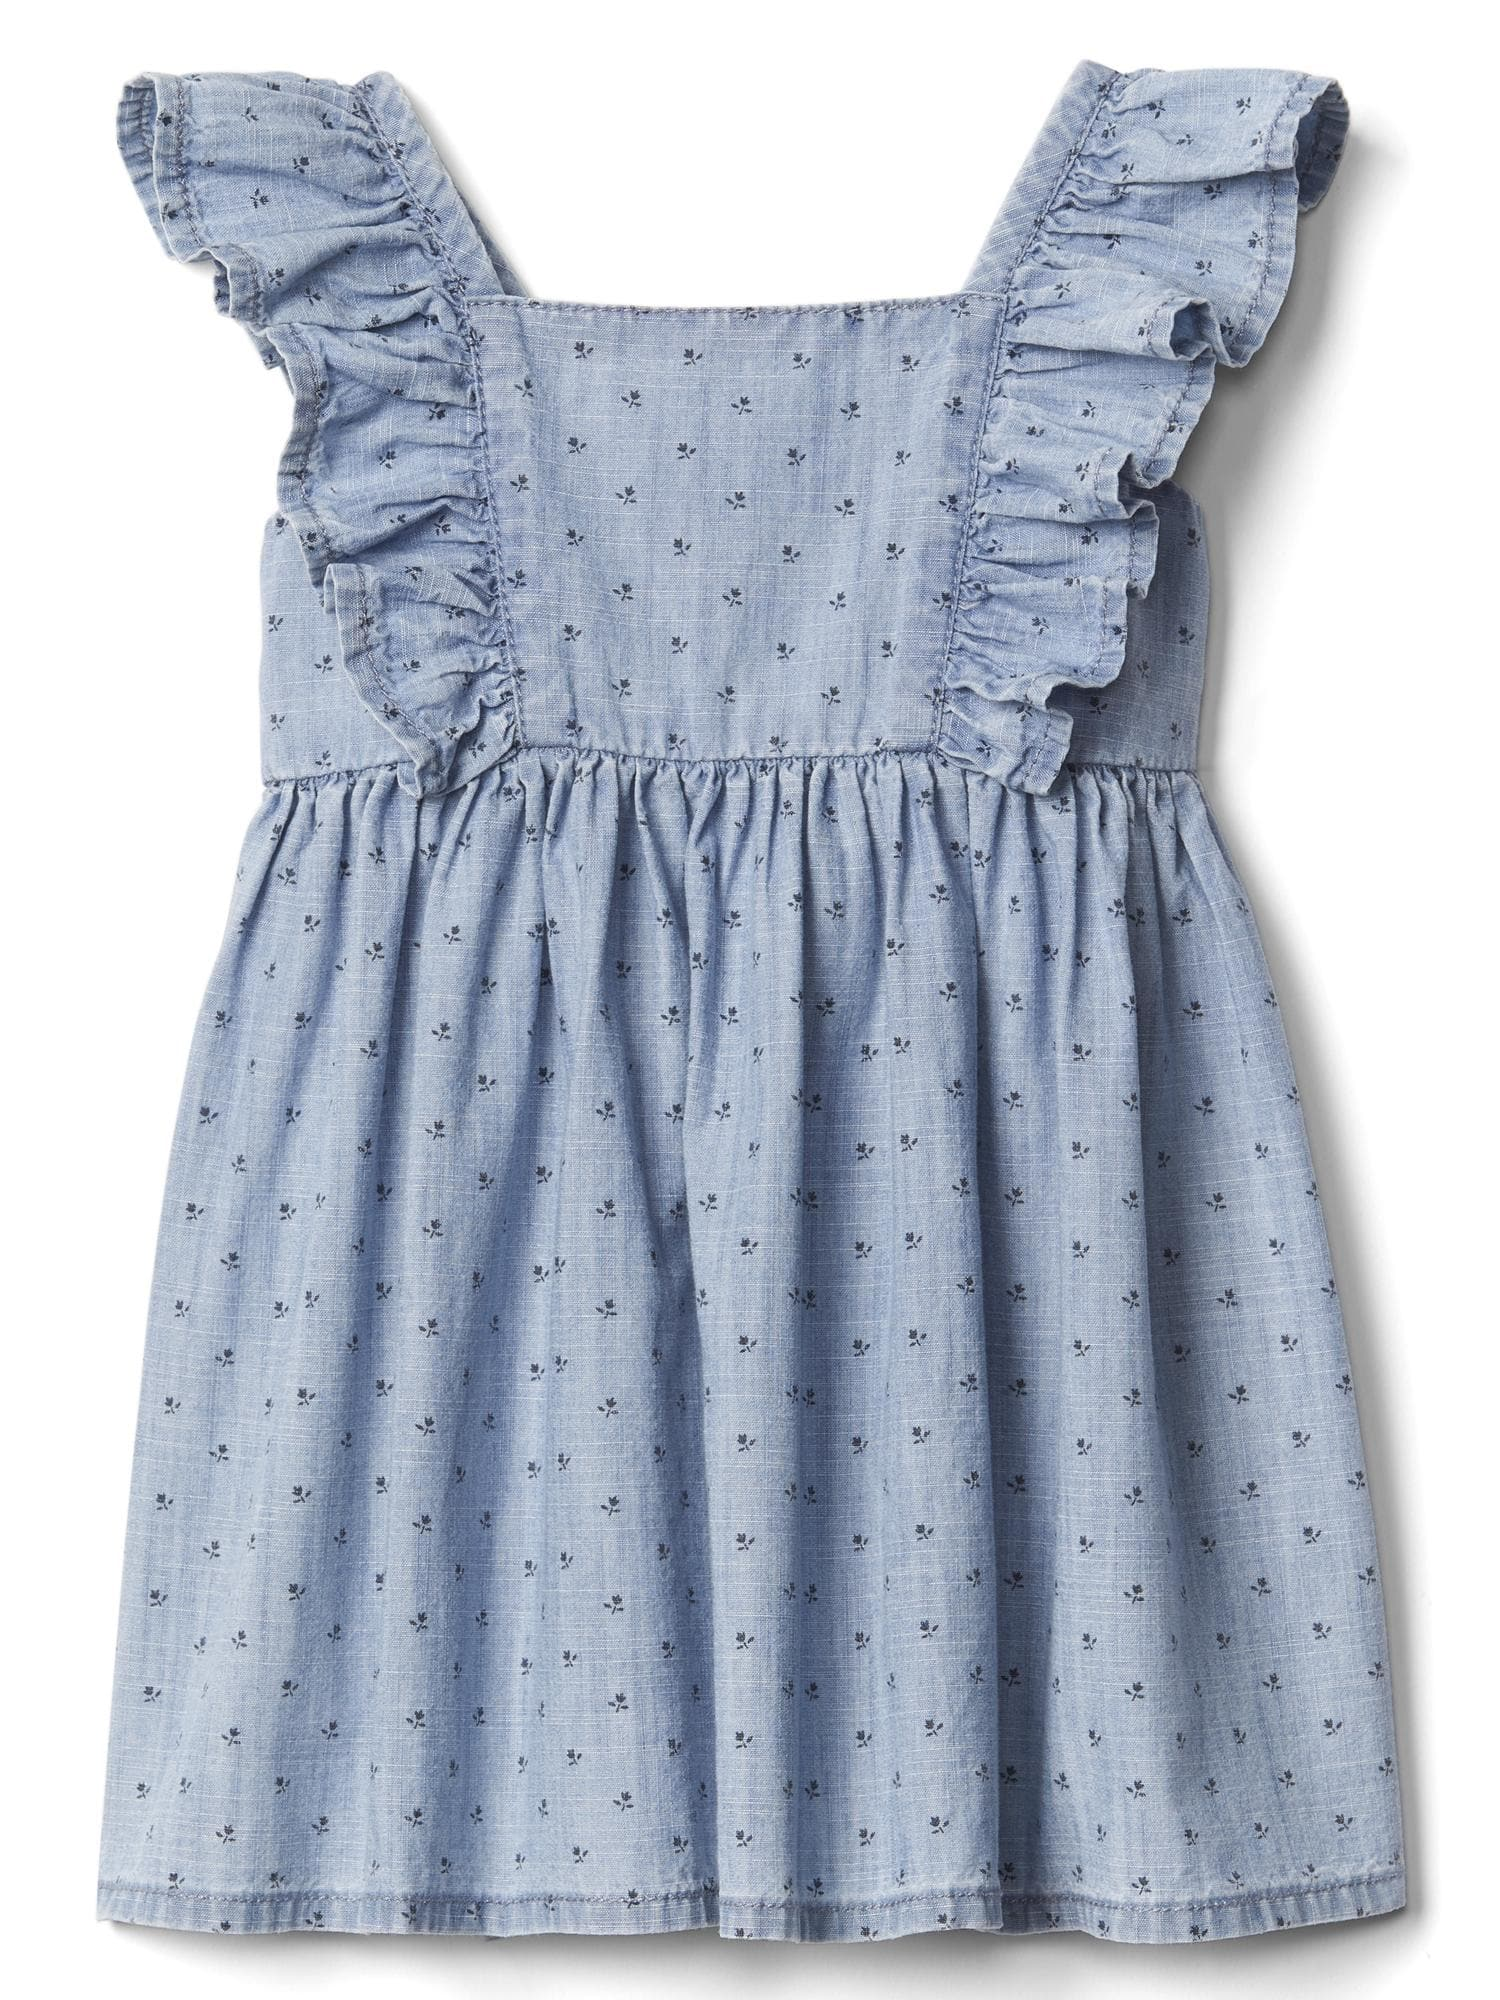 Floral Flutter Dress - $39.95 Gap